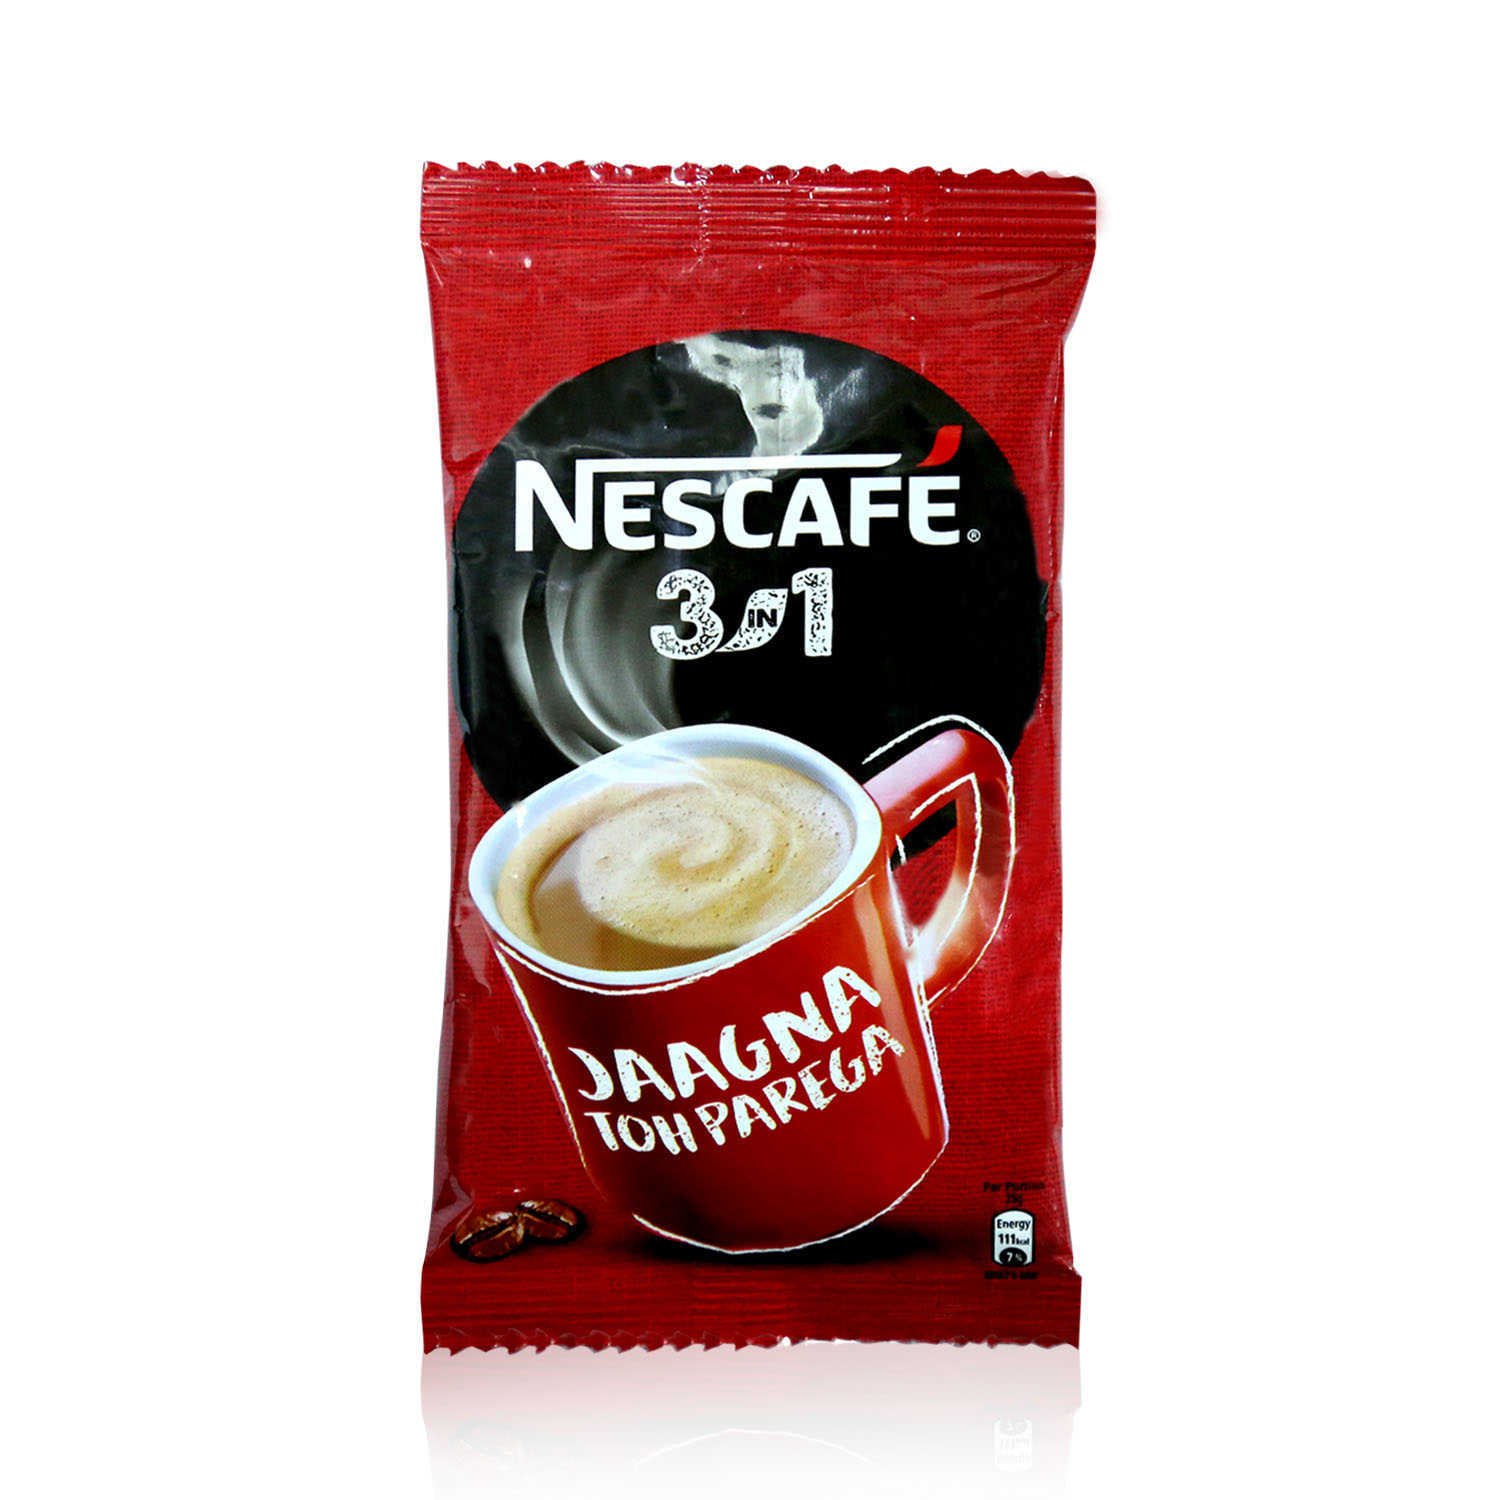 Nescafe 3in1 Coffee 25gm